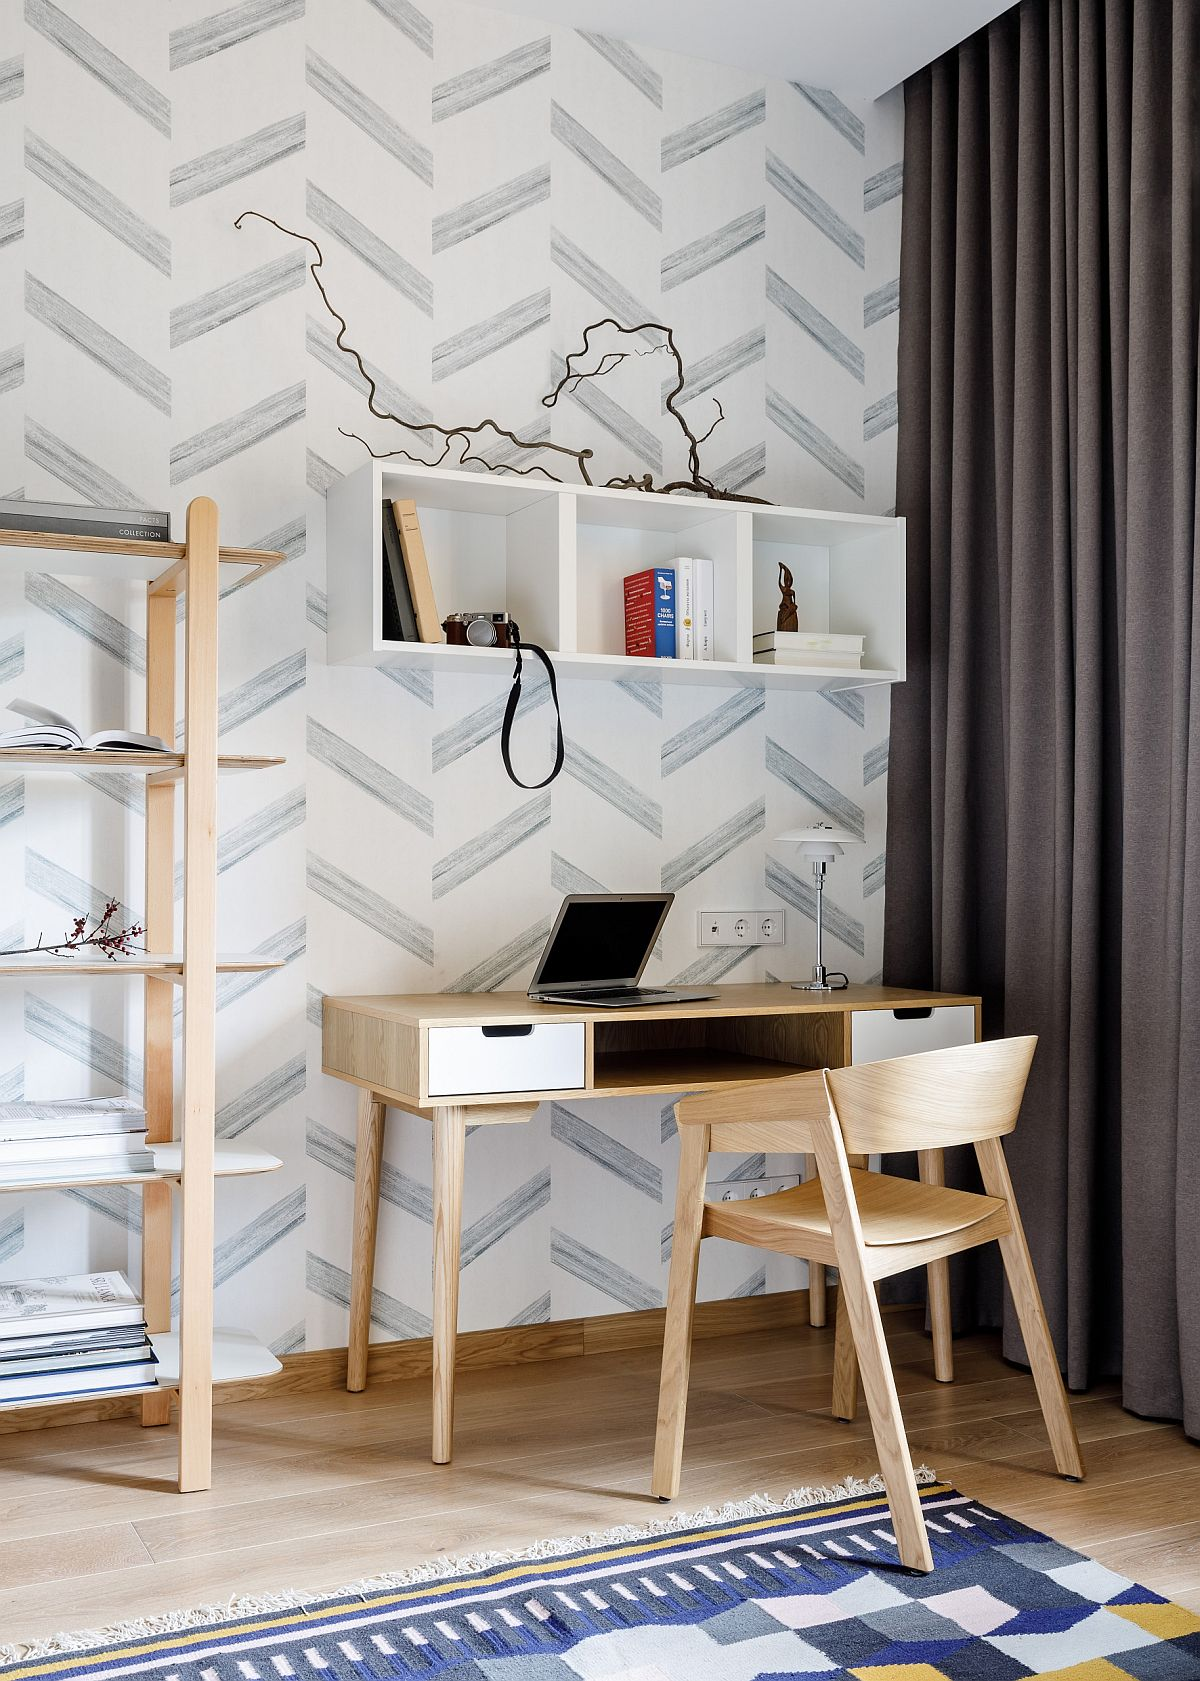 Modern-Scandinavian-style-home-office-in-Russian-home-in-neutral-hues-with-pattern-in-the-backdrop-96348